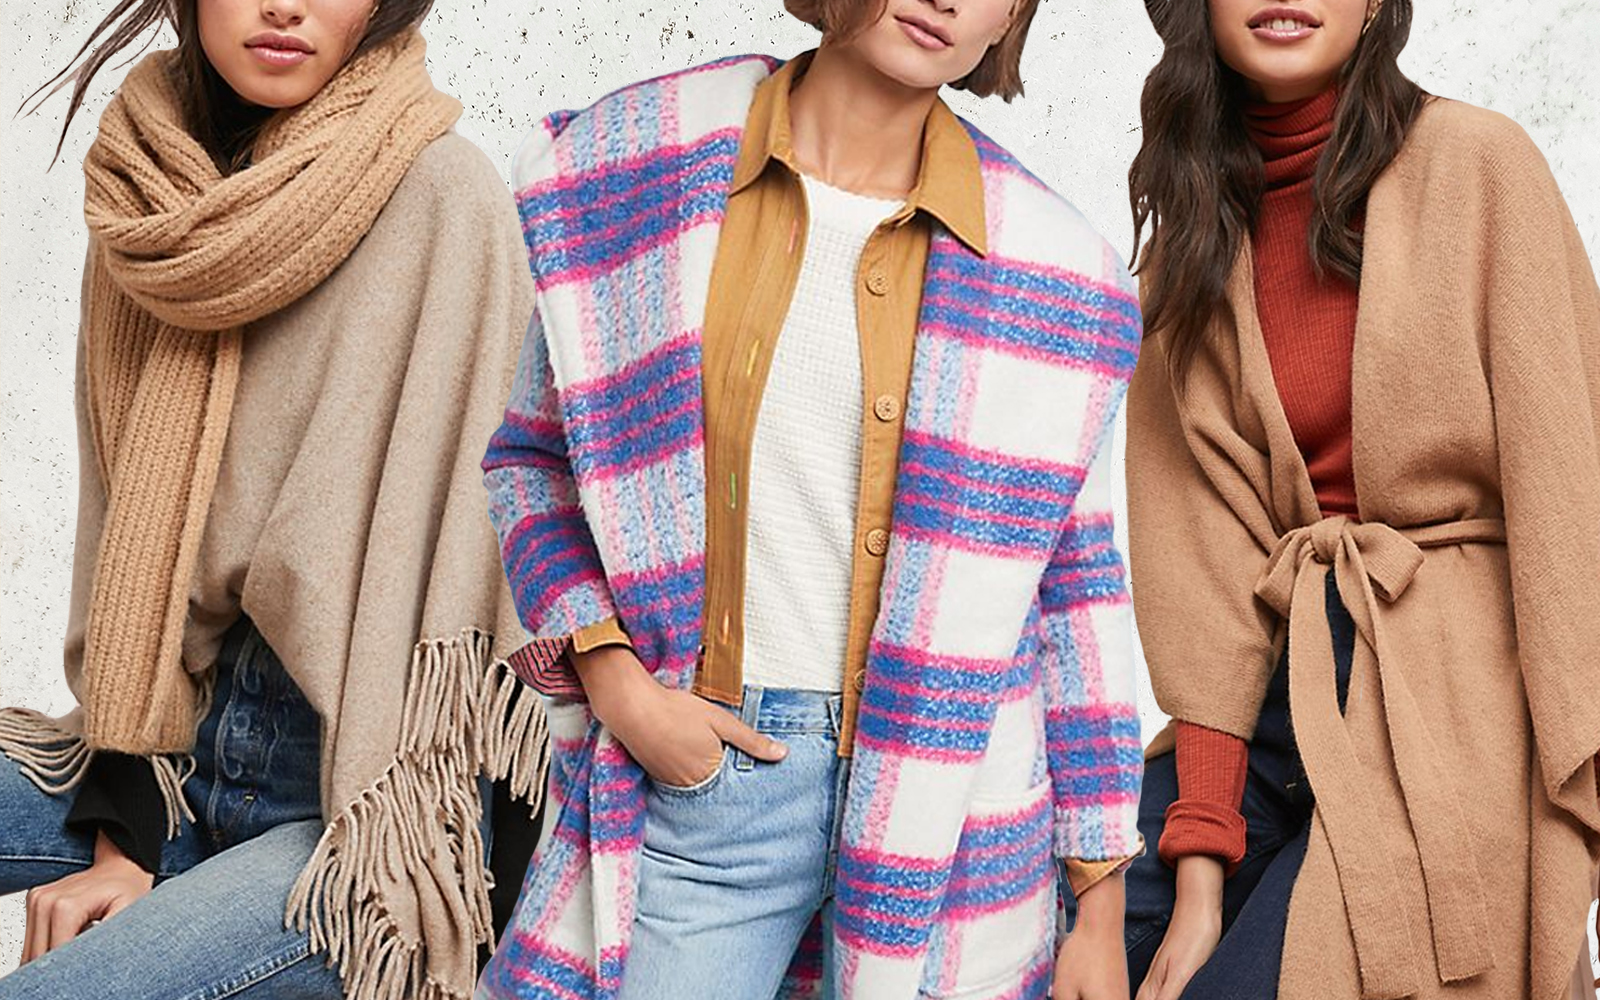 Anthropologie's Coziest Sweaters, Coats, and Boots Are 40% Off Right Now